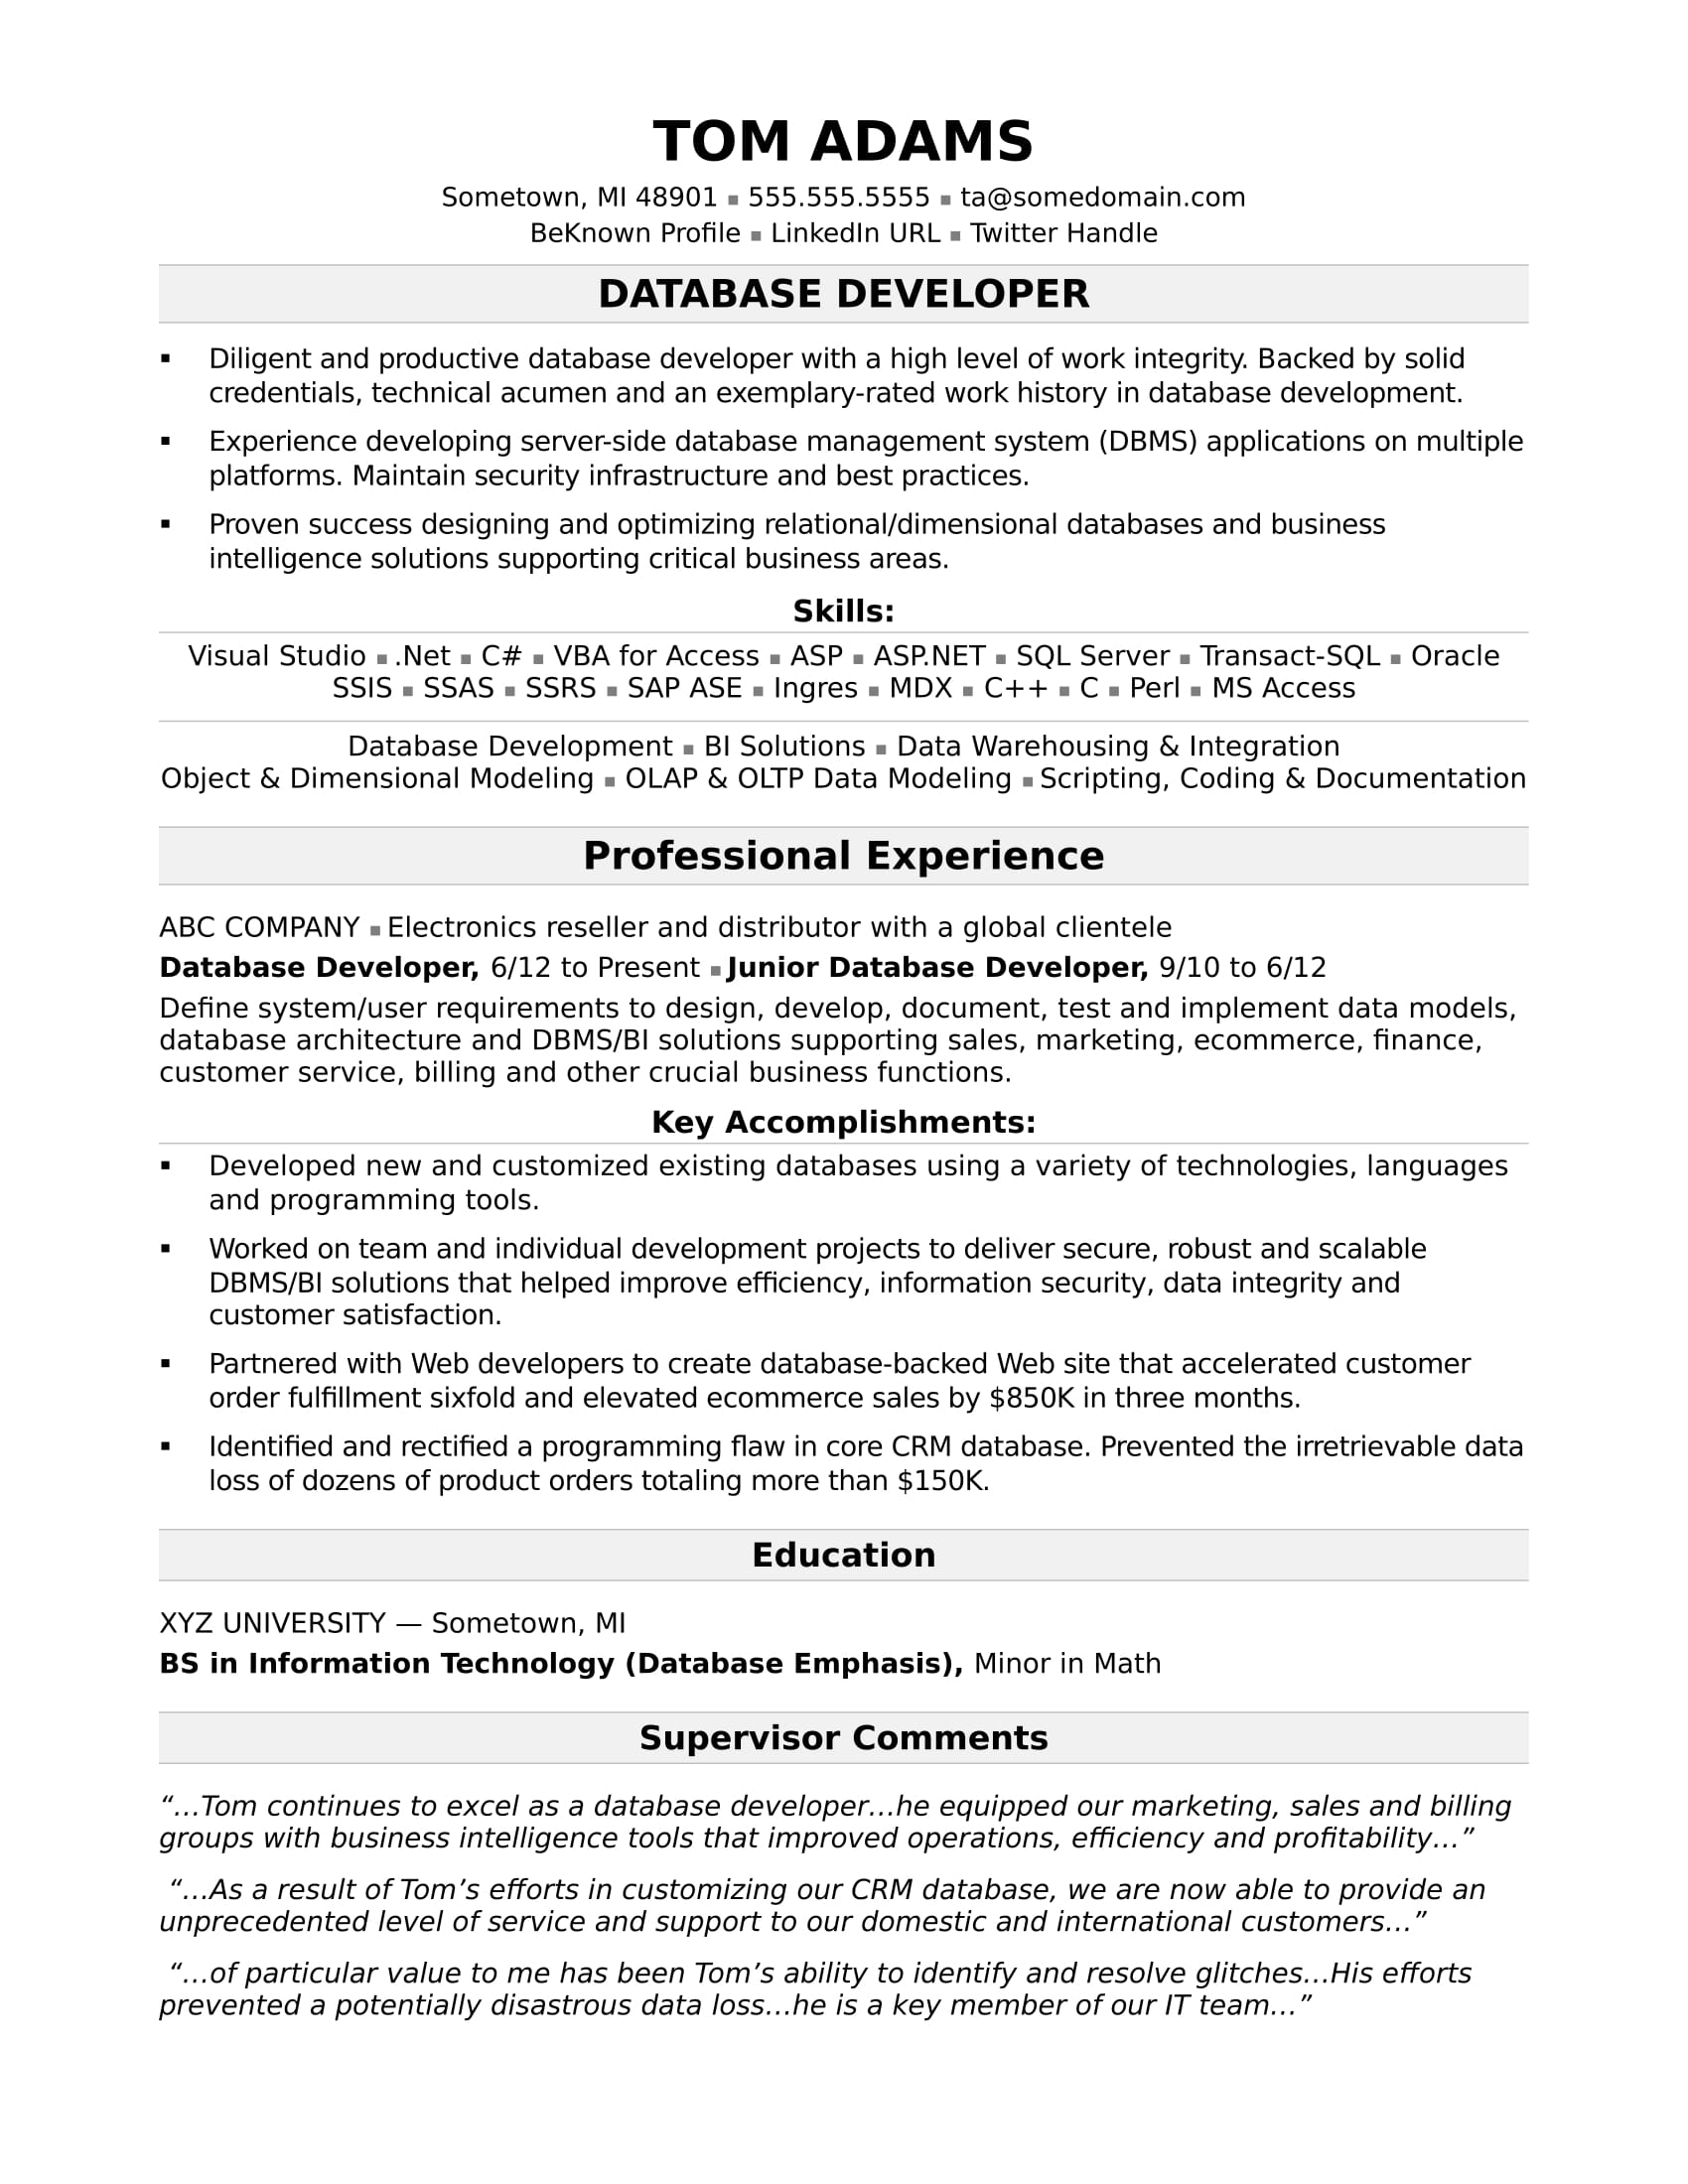 Sample Resume For A Midlevel IT Developer  Resume For